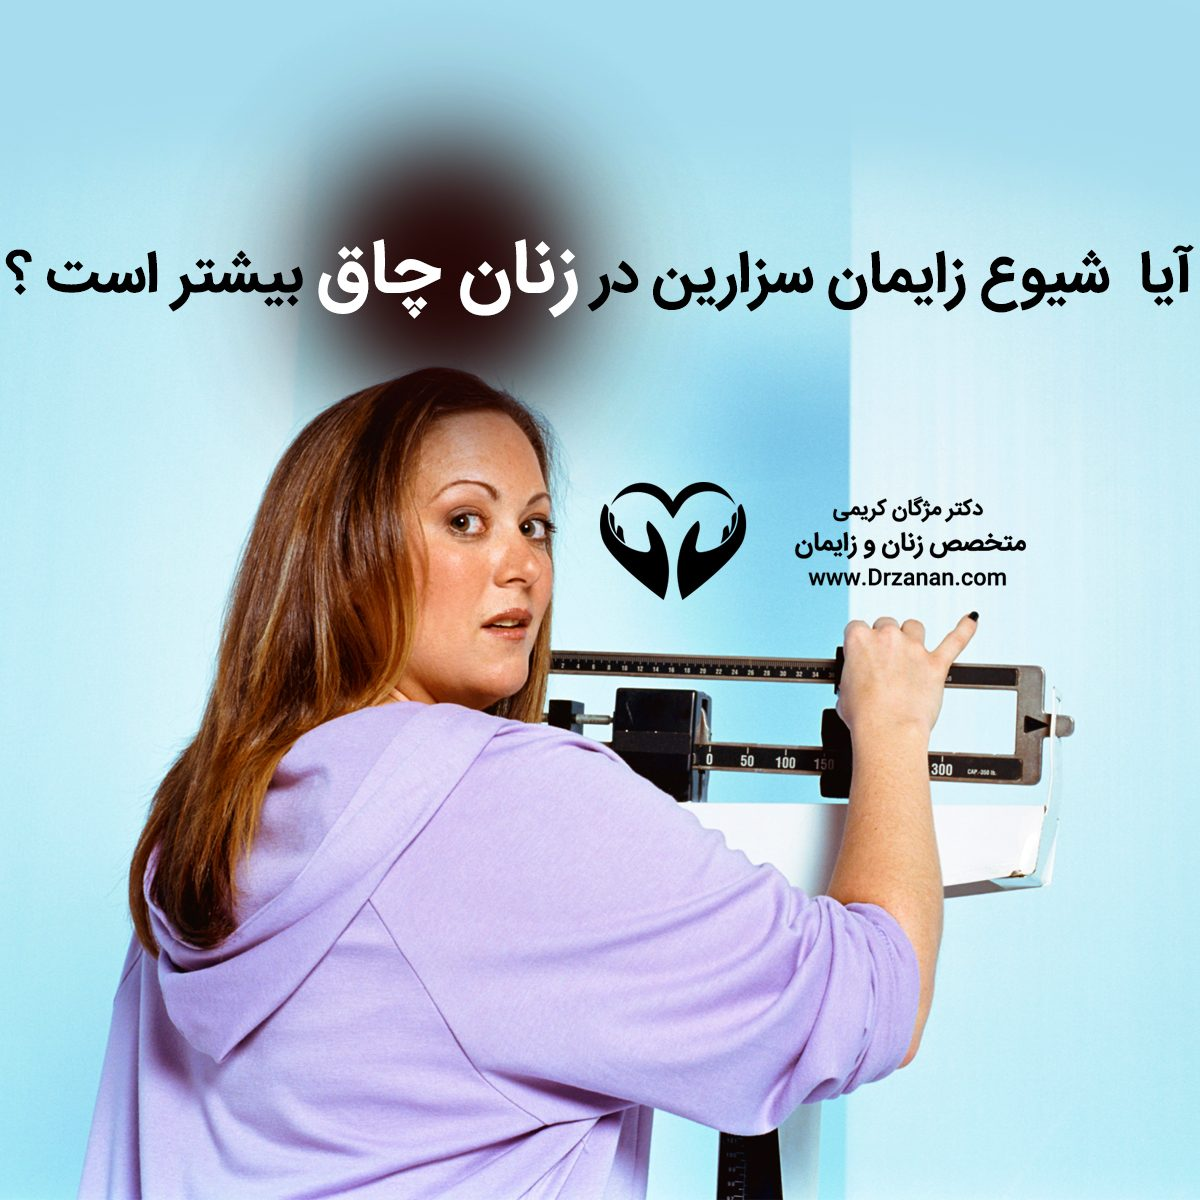 is-the-prevalence-of-cesarean-delivery-prevalent-in-obese-women-1200x1200.jpg